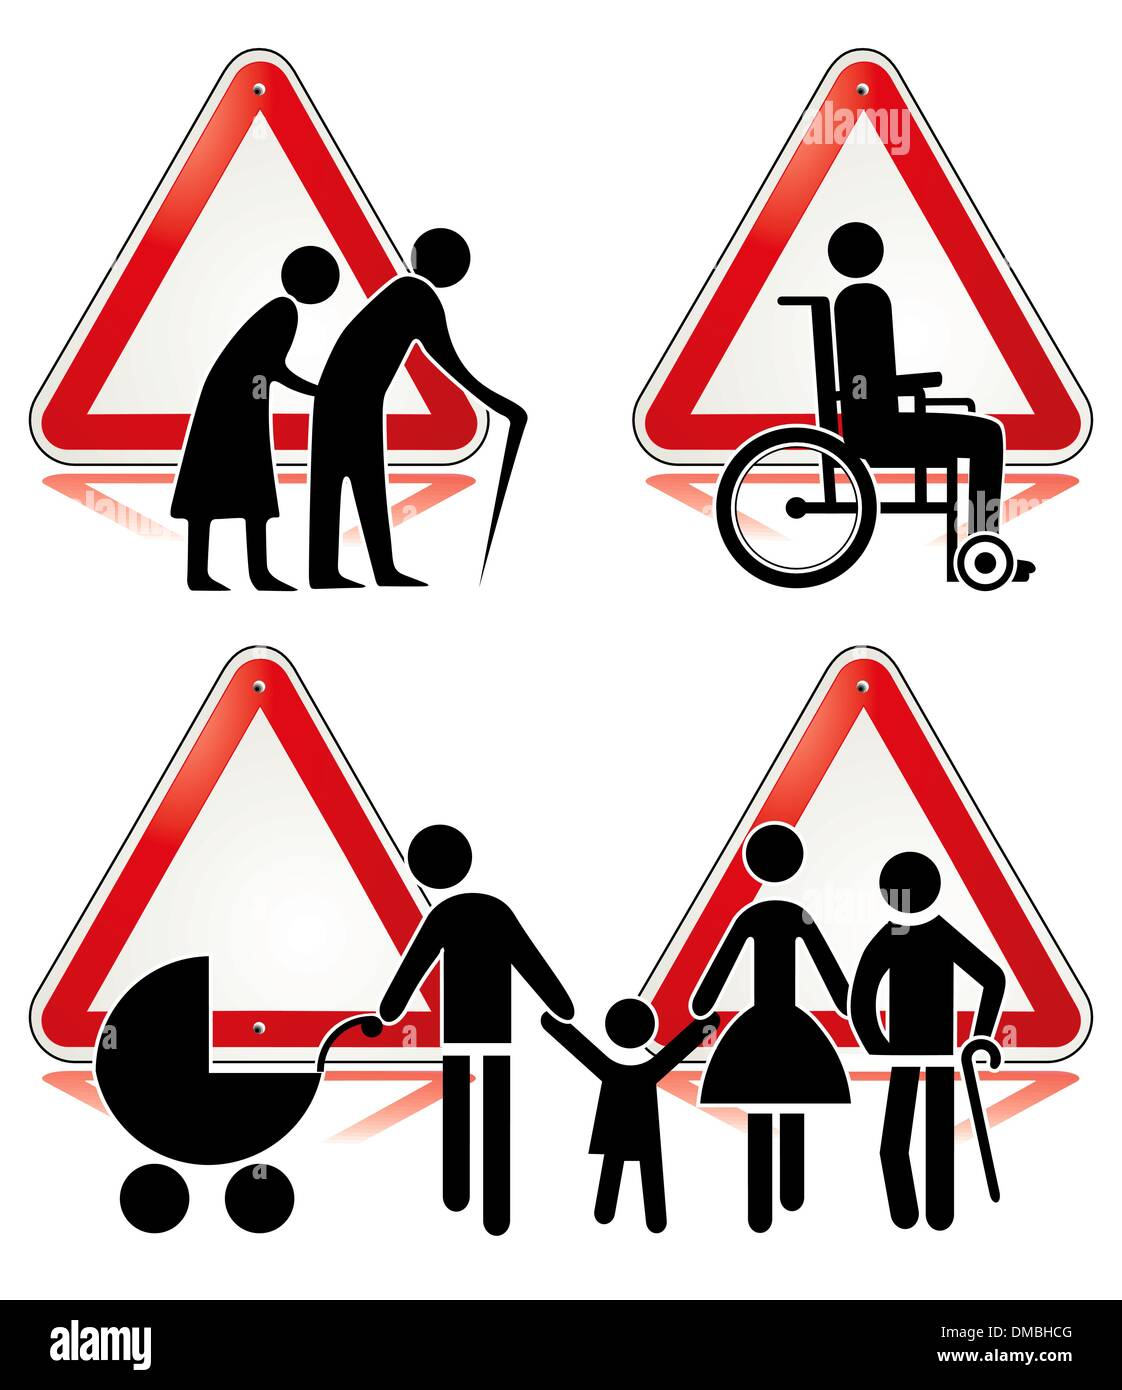 collection of handicap signs - Stock Image